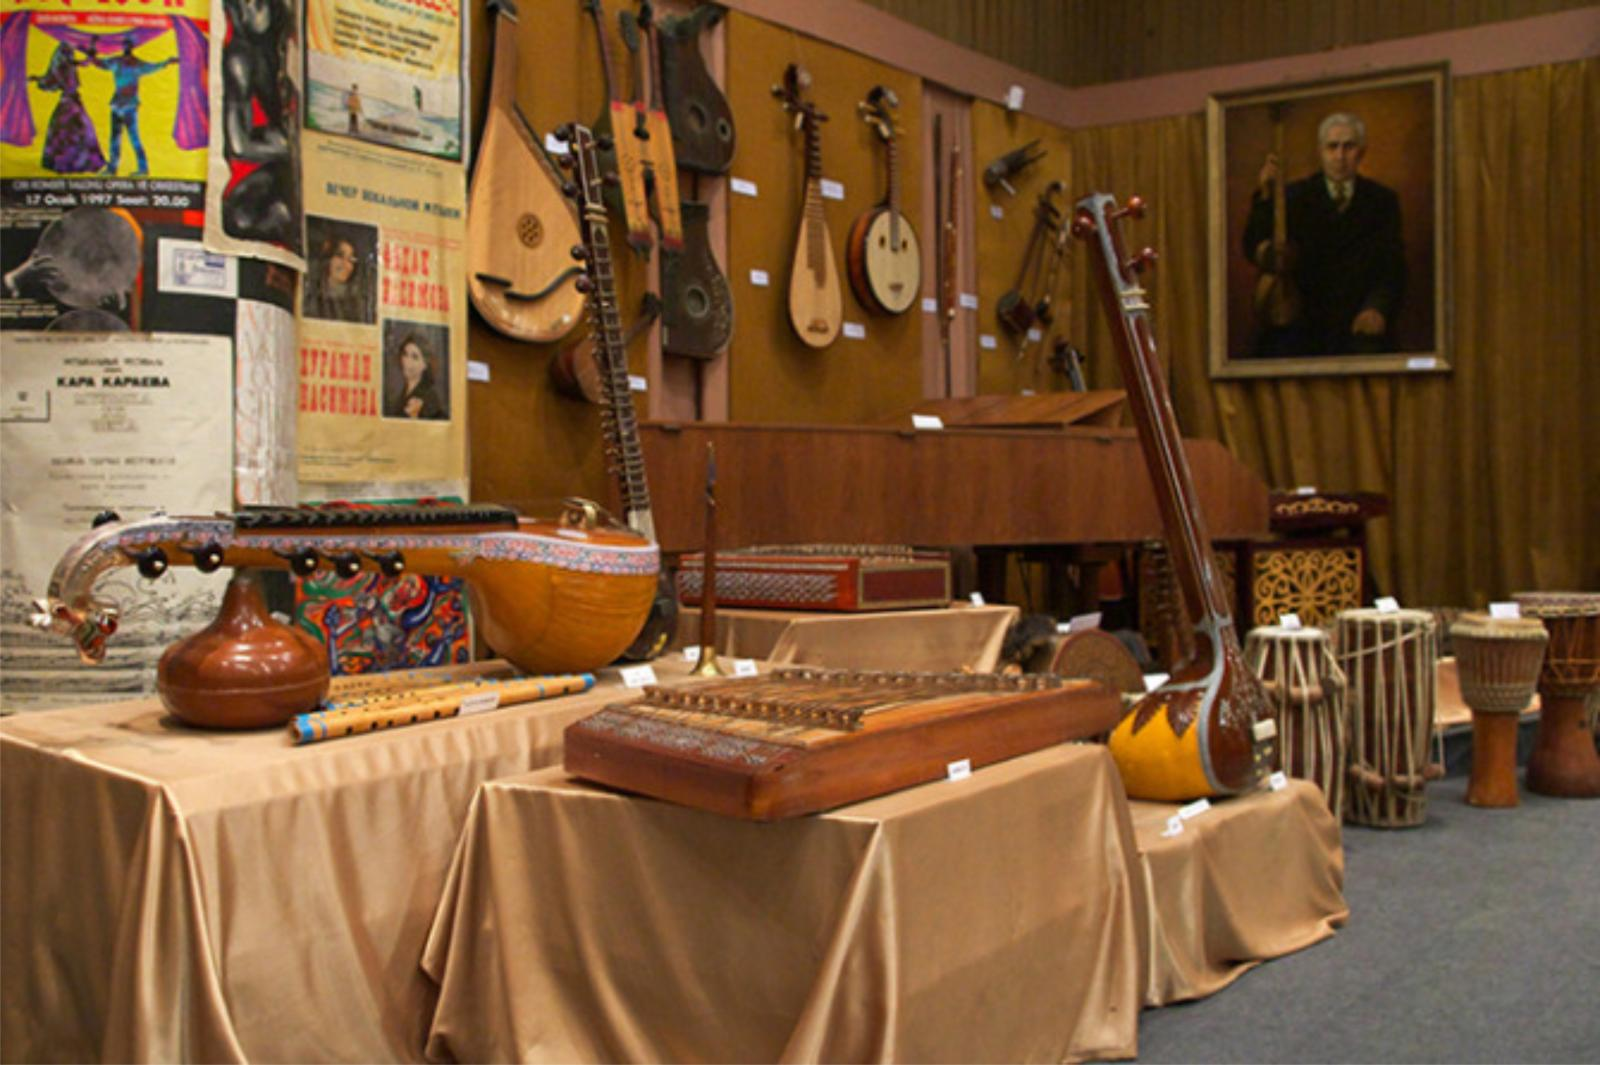 The State Museum of Musical Culture of Azerbaijan